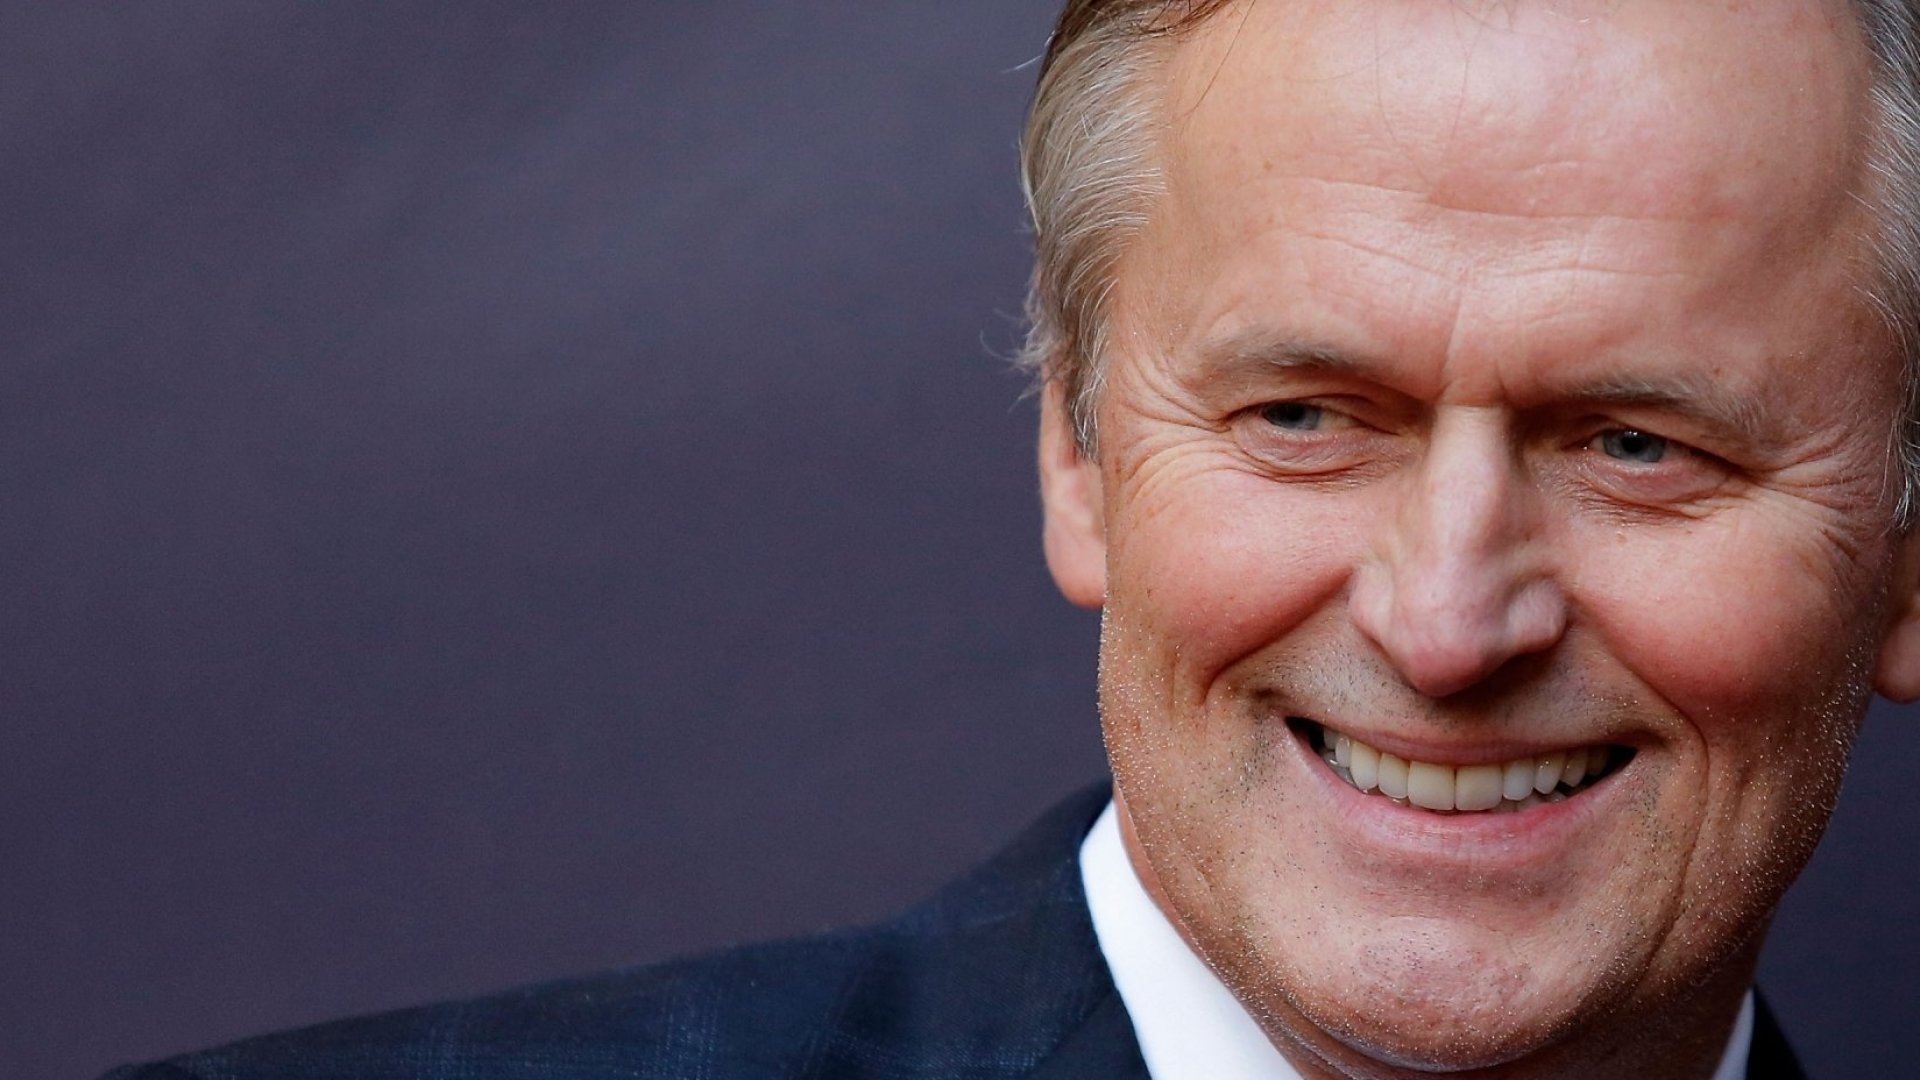 This Simple Writing Strategy Helped John Grisham Sell Over 300 Million Books